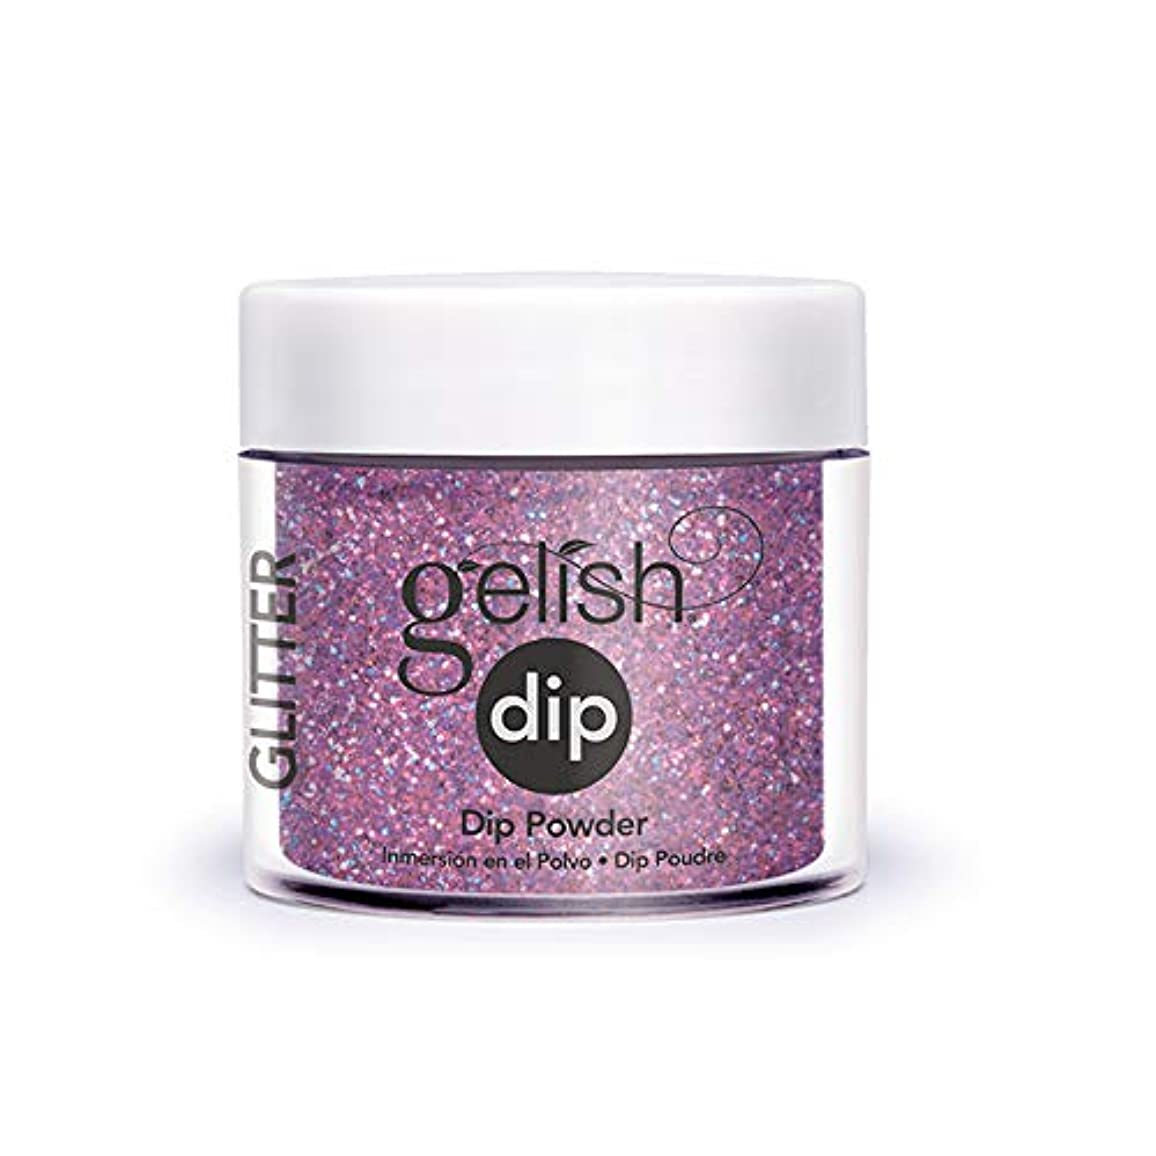 Harmony Gelish - Acrylic Dip Powder - #partygirlproblems - 23g / 0.8oz